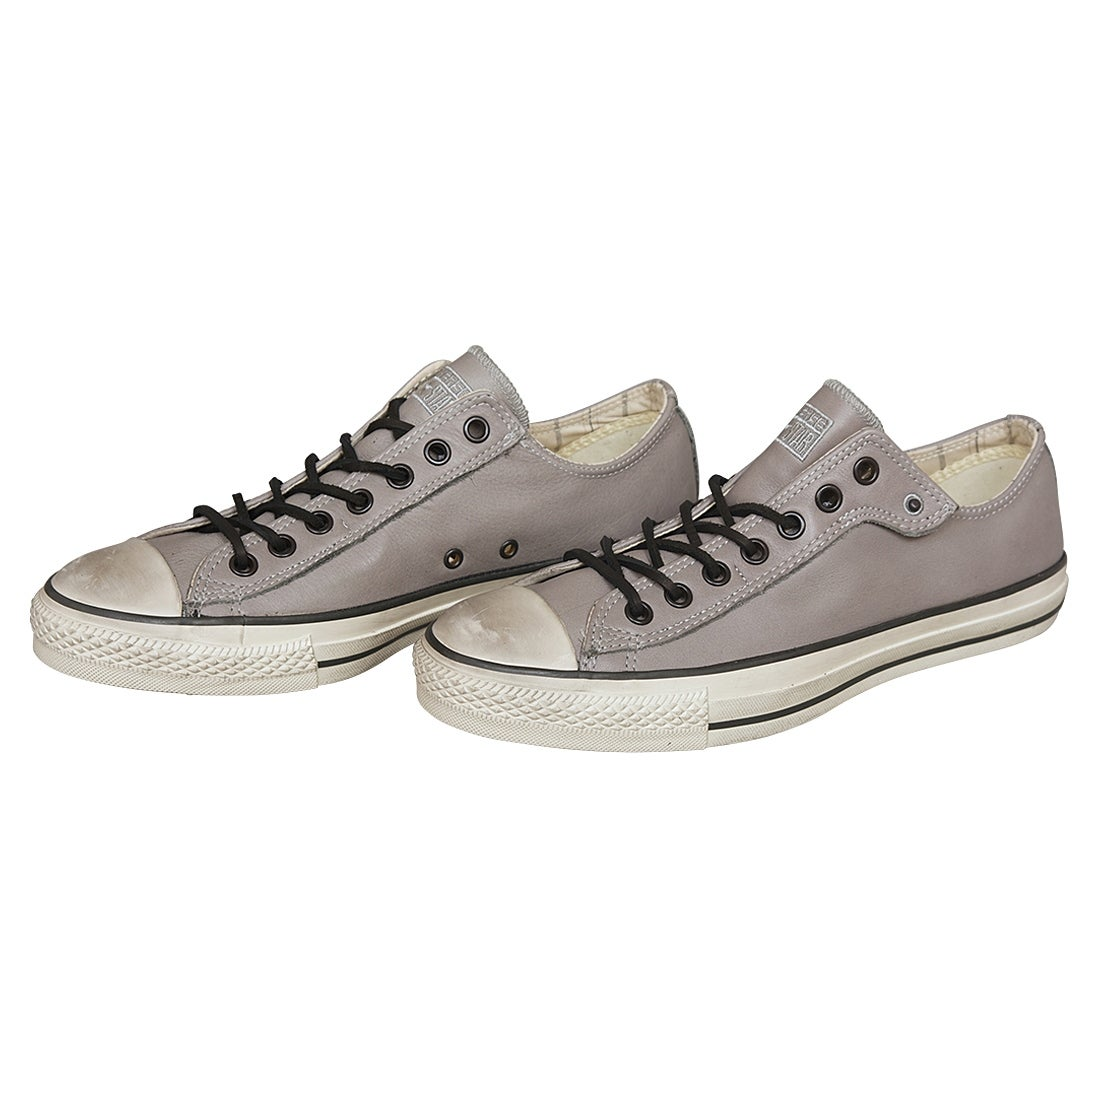 42e4885f5594 Shop John Varvatos Converse Chuck Taylor Oxford Gray Leather Sneakers Size  9.5 - Free Shipping Today - Overstock - 22704634